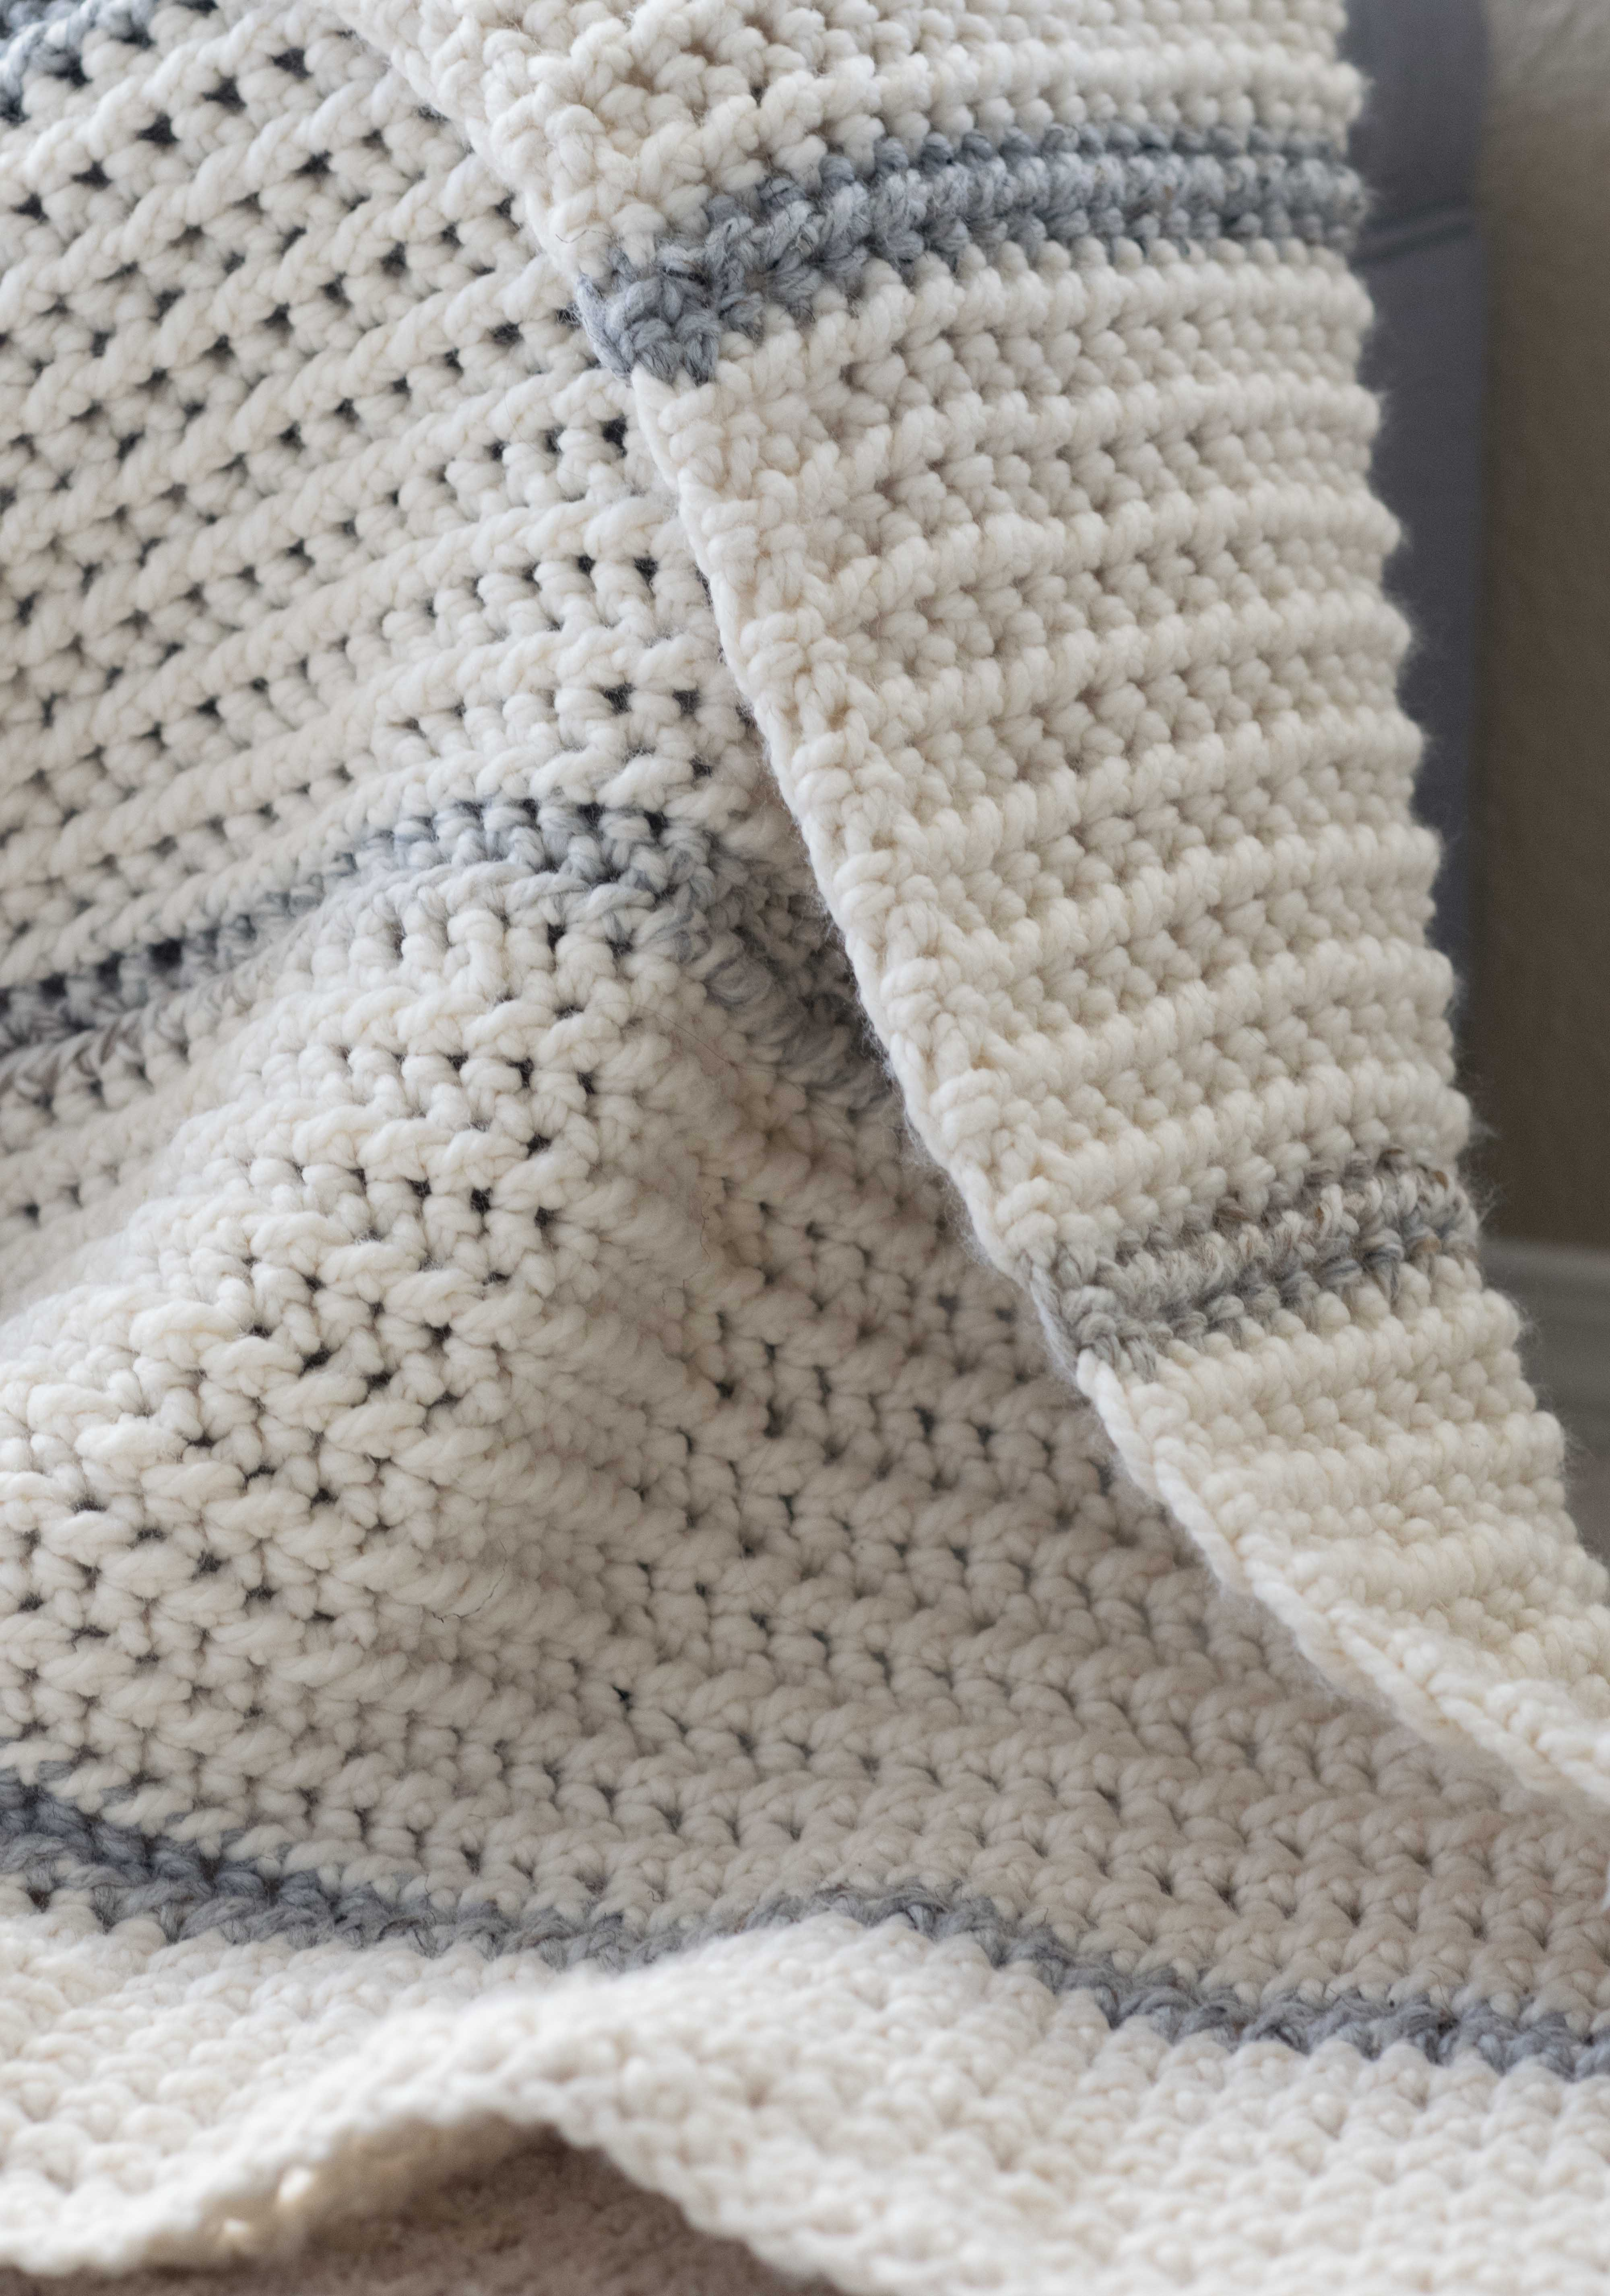 What You Should Know Before Proceeding Crochet Chunky Yarn Patterns Winter Chunky Ribbed Crochet Afghan Pattern Mama In A Stitch